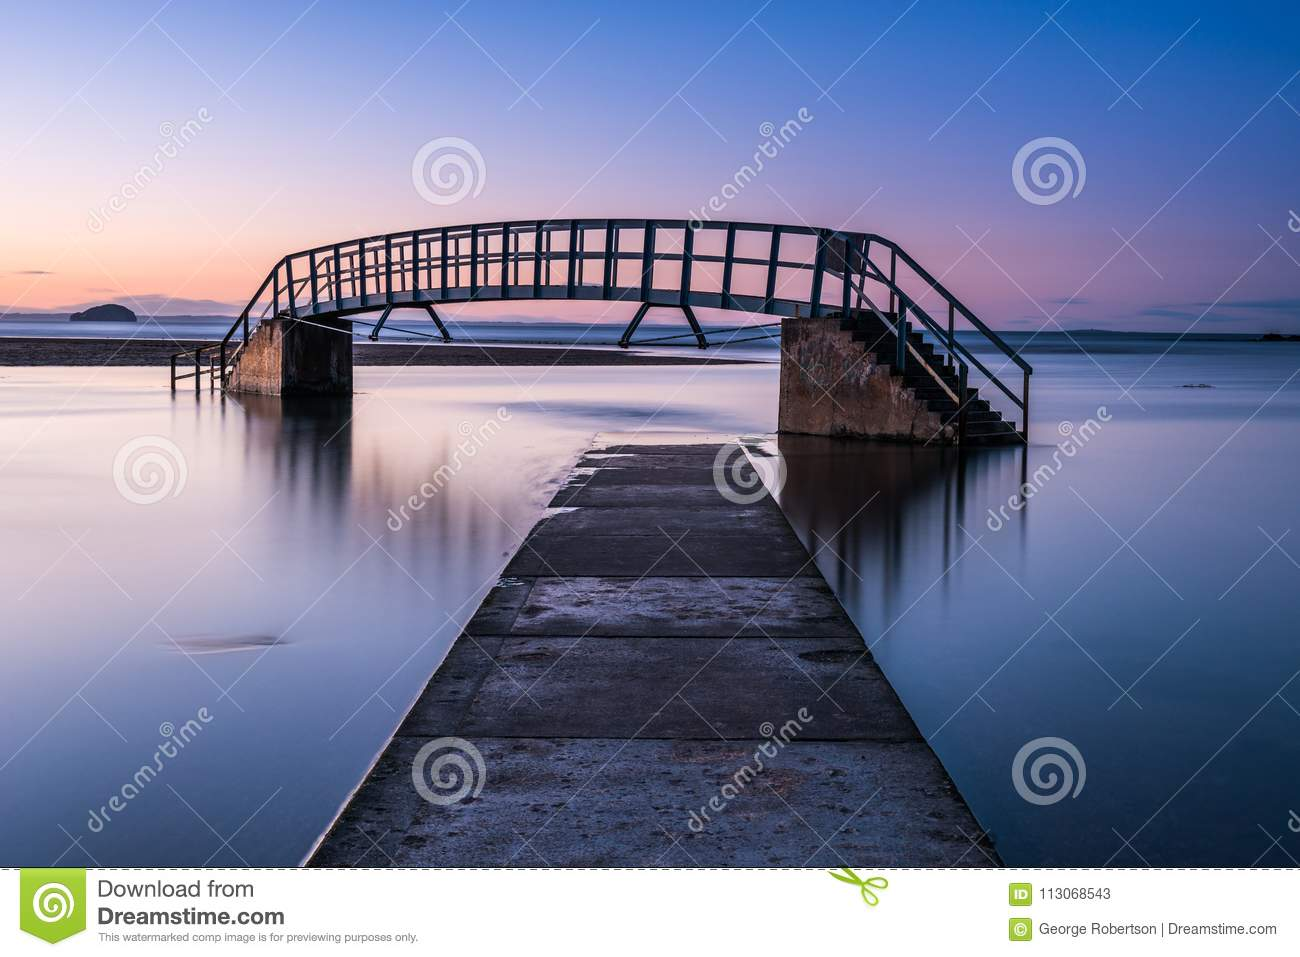 High Tide At The Bridge To Nowhere Stock Image - Image of bass